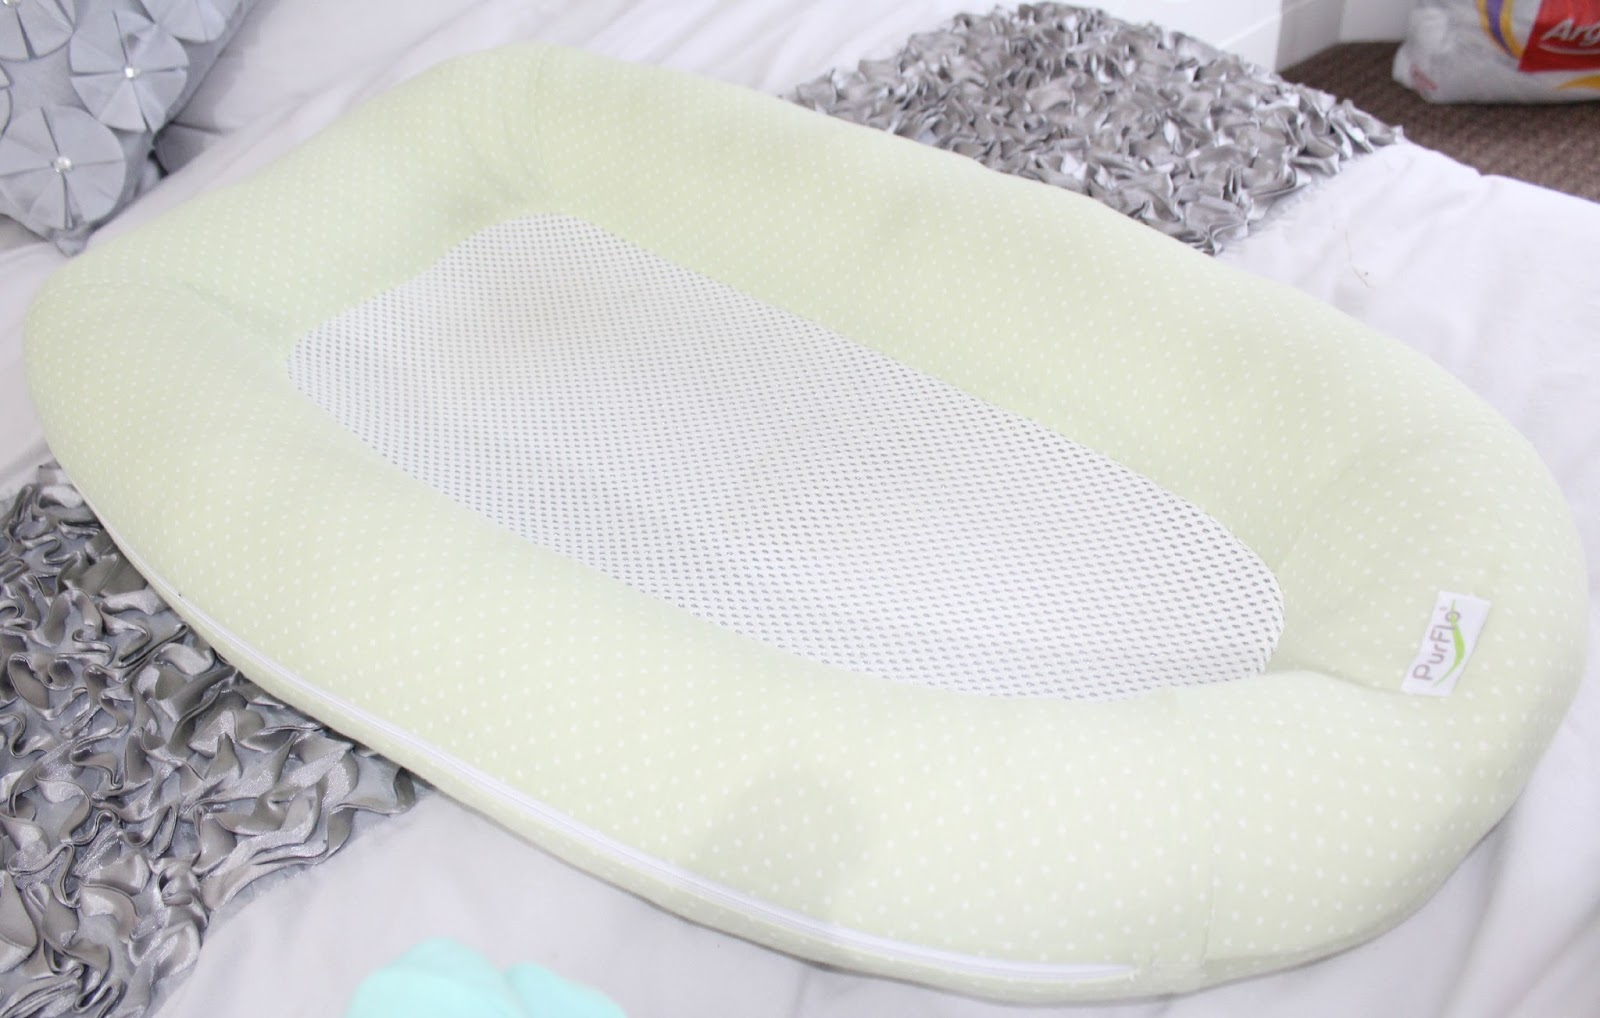 Baby bed for reflux - As Well As Being The Perfect Sleep Solution For Naptimes On The Go An Ideal Crib Or Cot Insert Or A Great Little Changing Station You Can Also Use The Nest